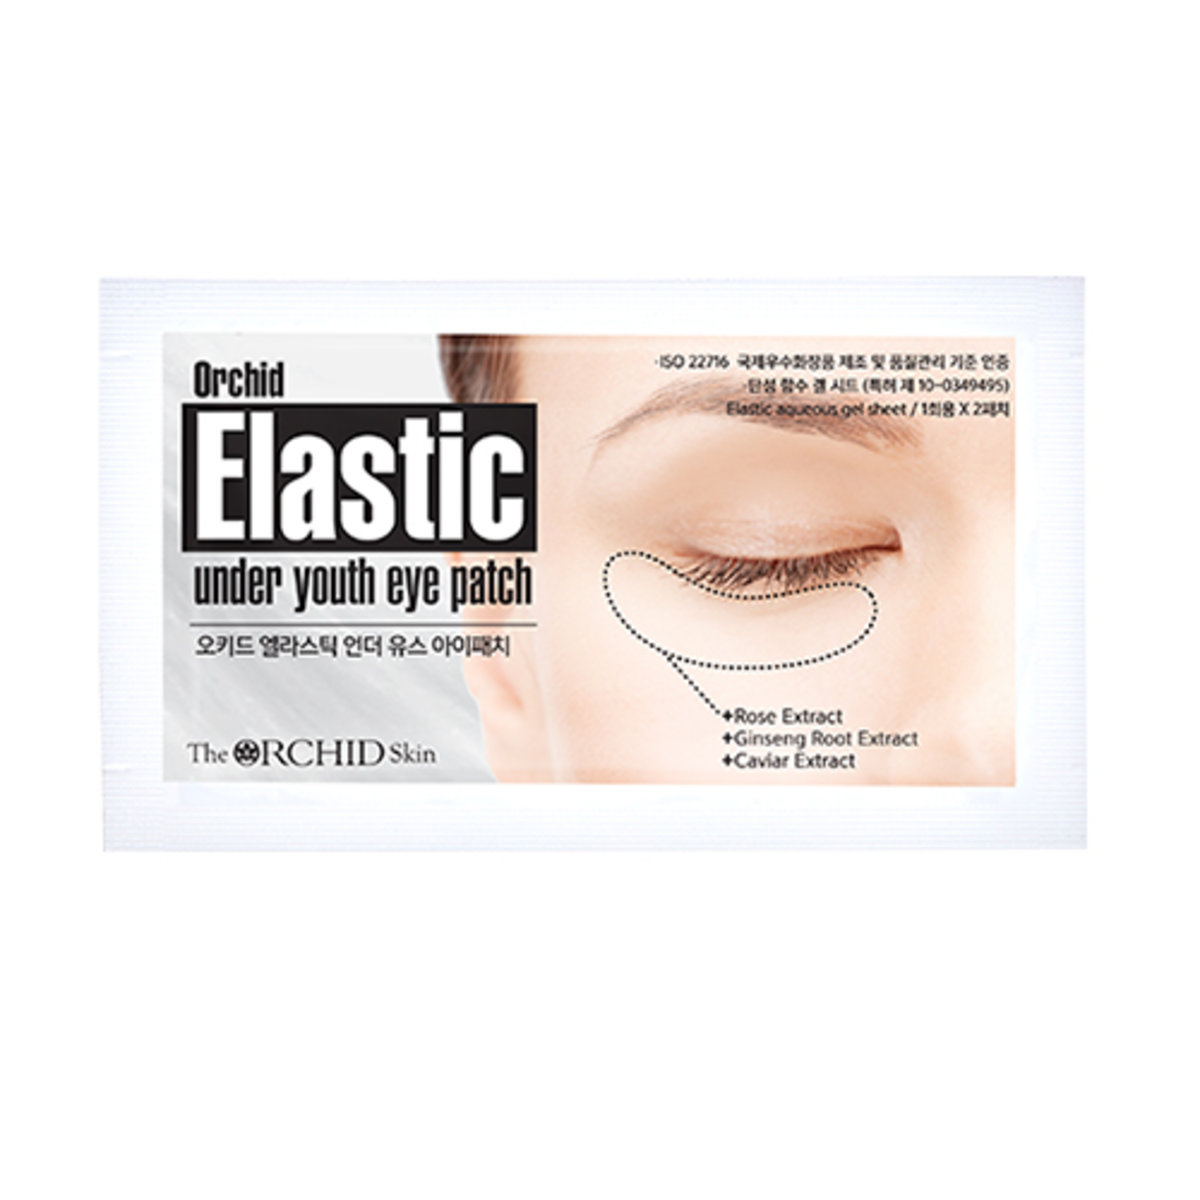 The orchid skin Elastic mirco eye patch微針眼膜